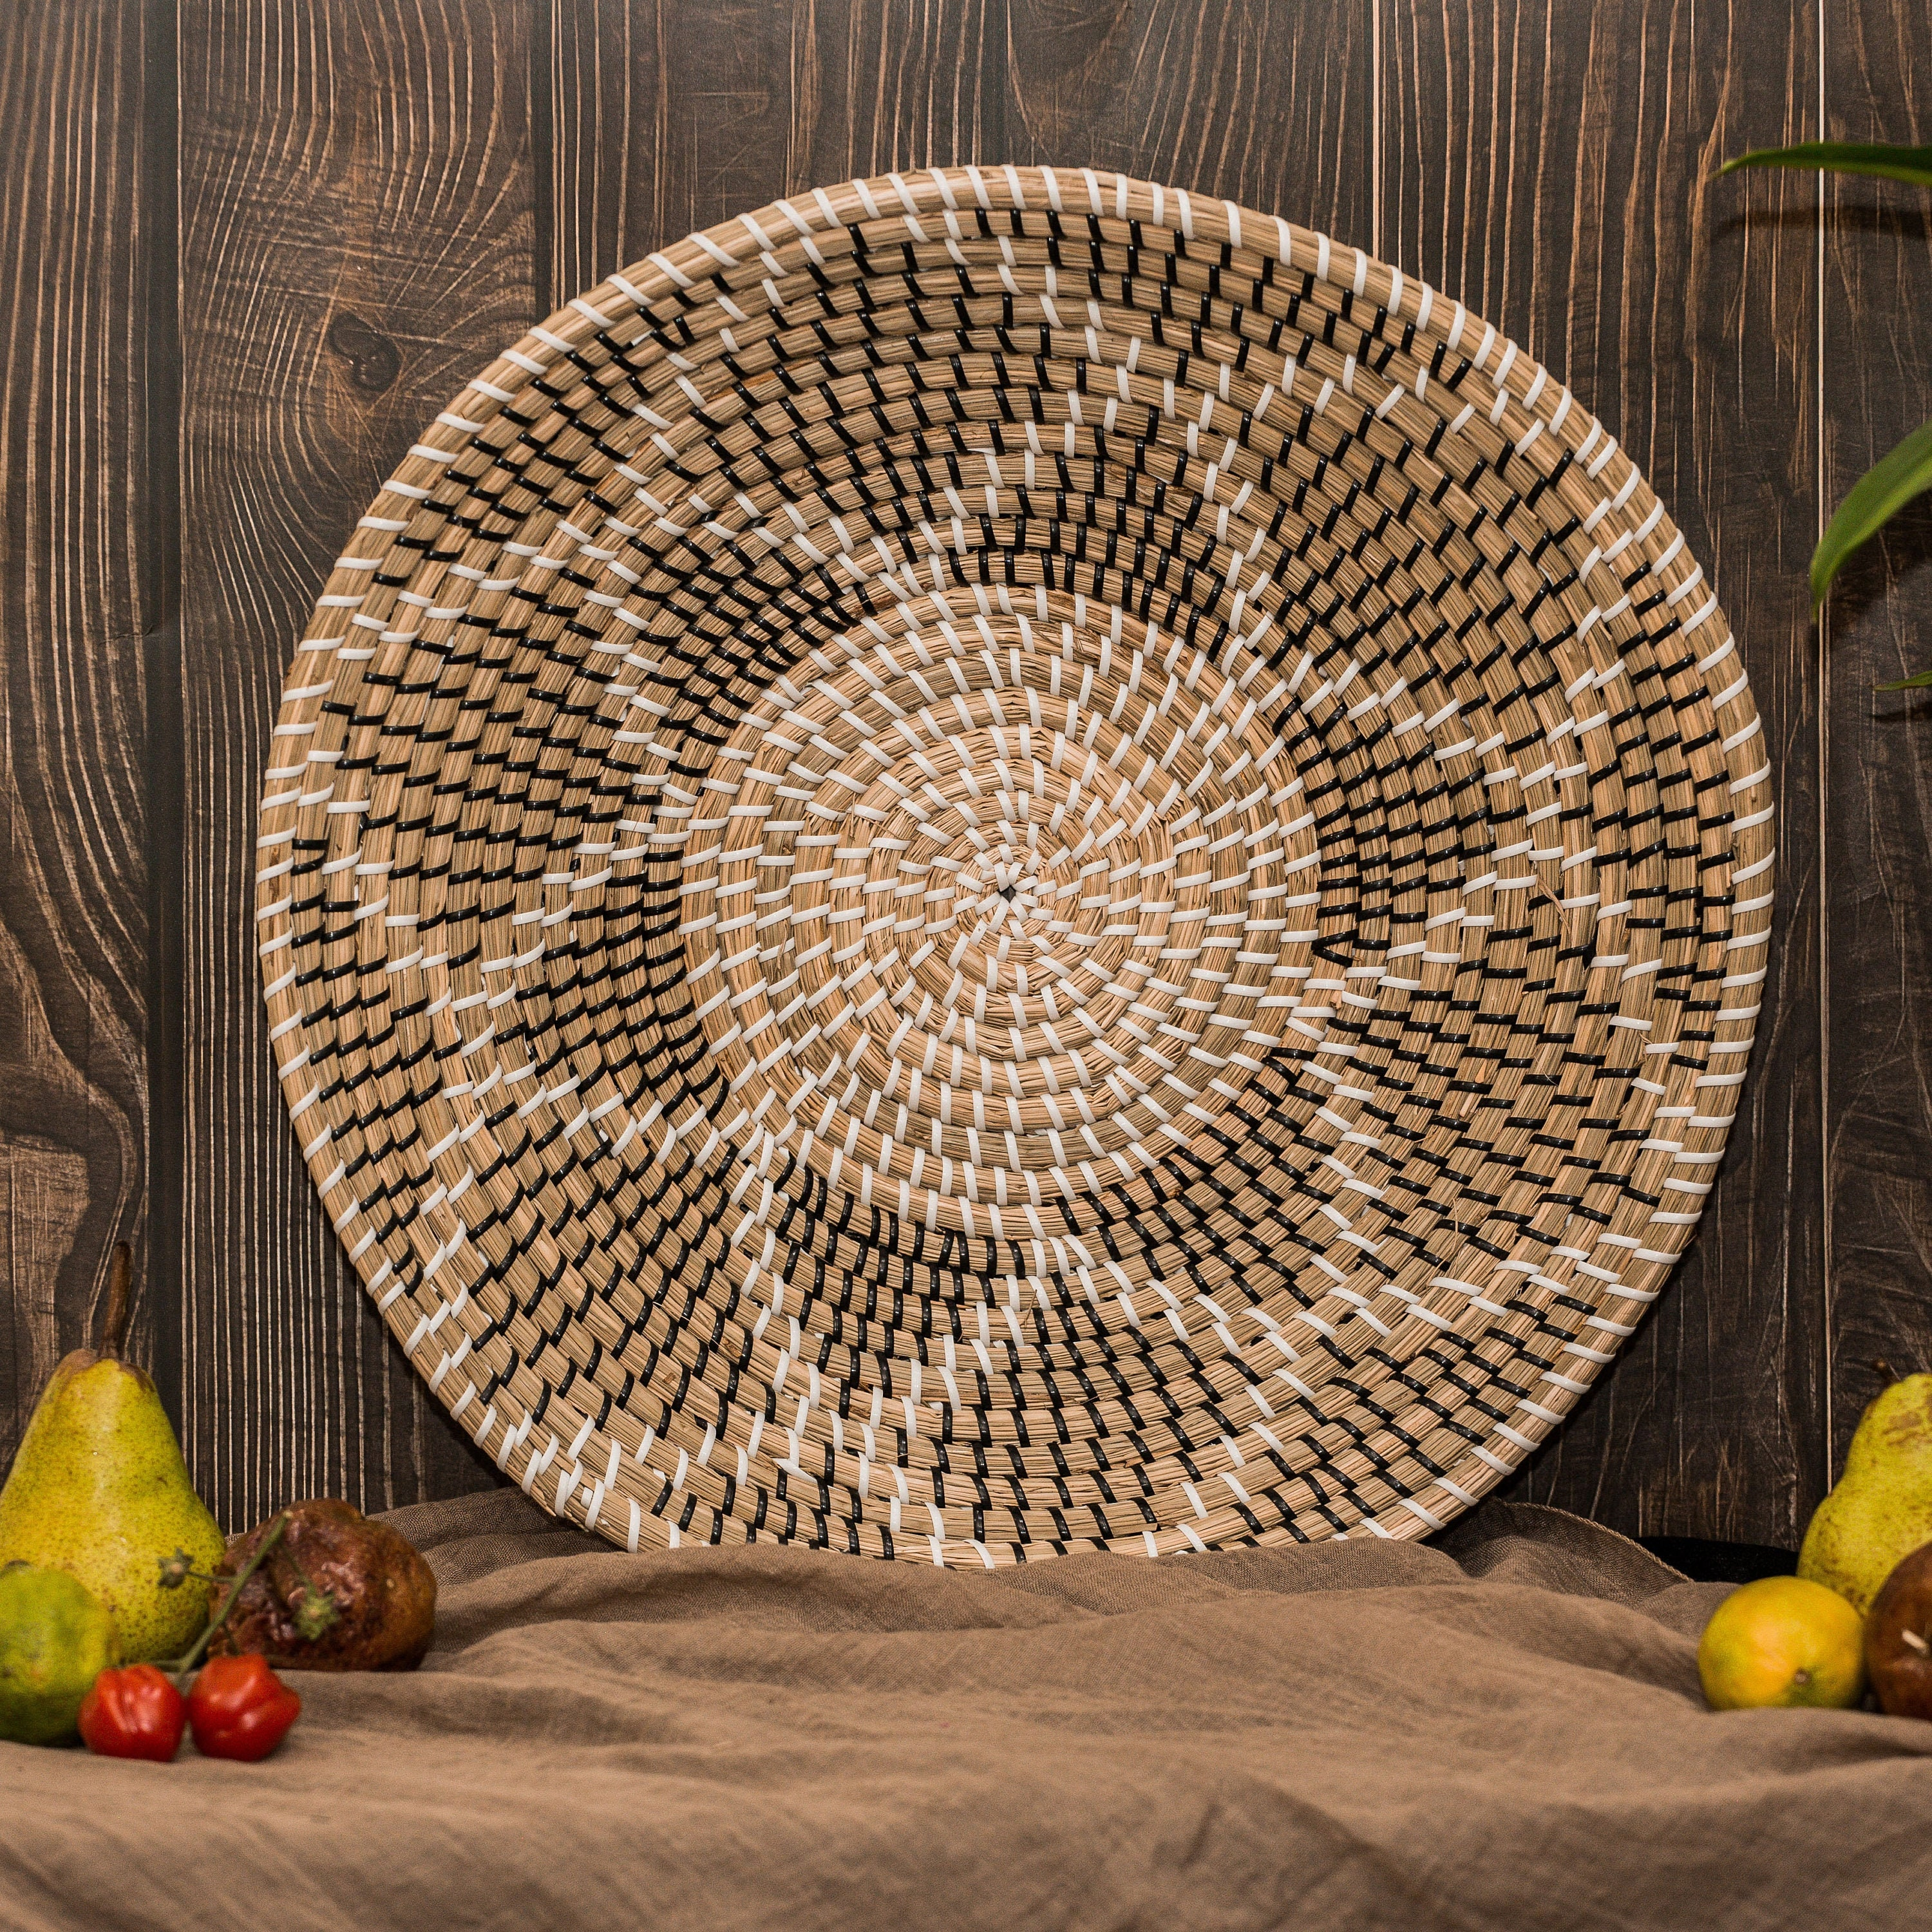 Boho Round Rattan Flower Serving Tray Aria